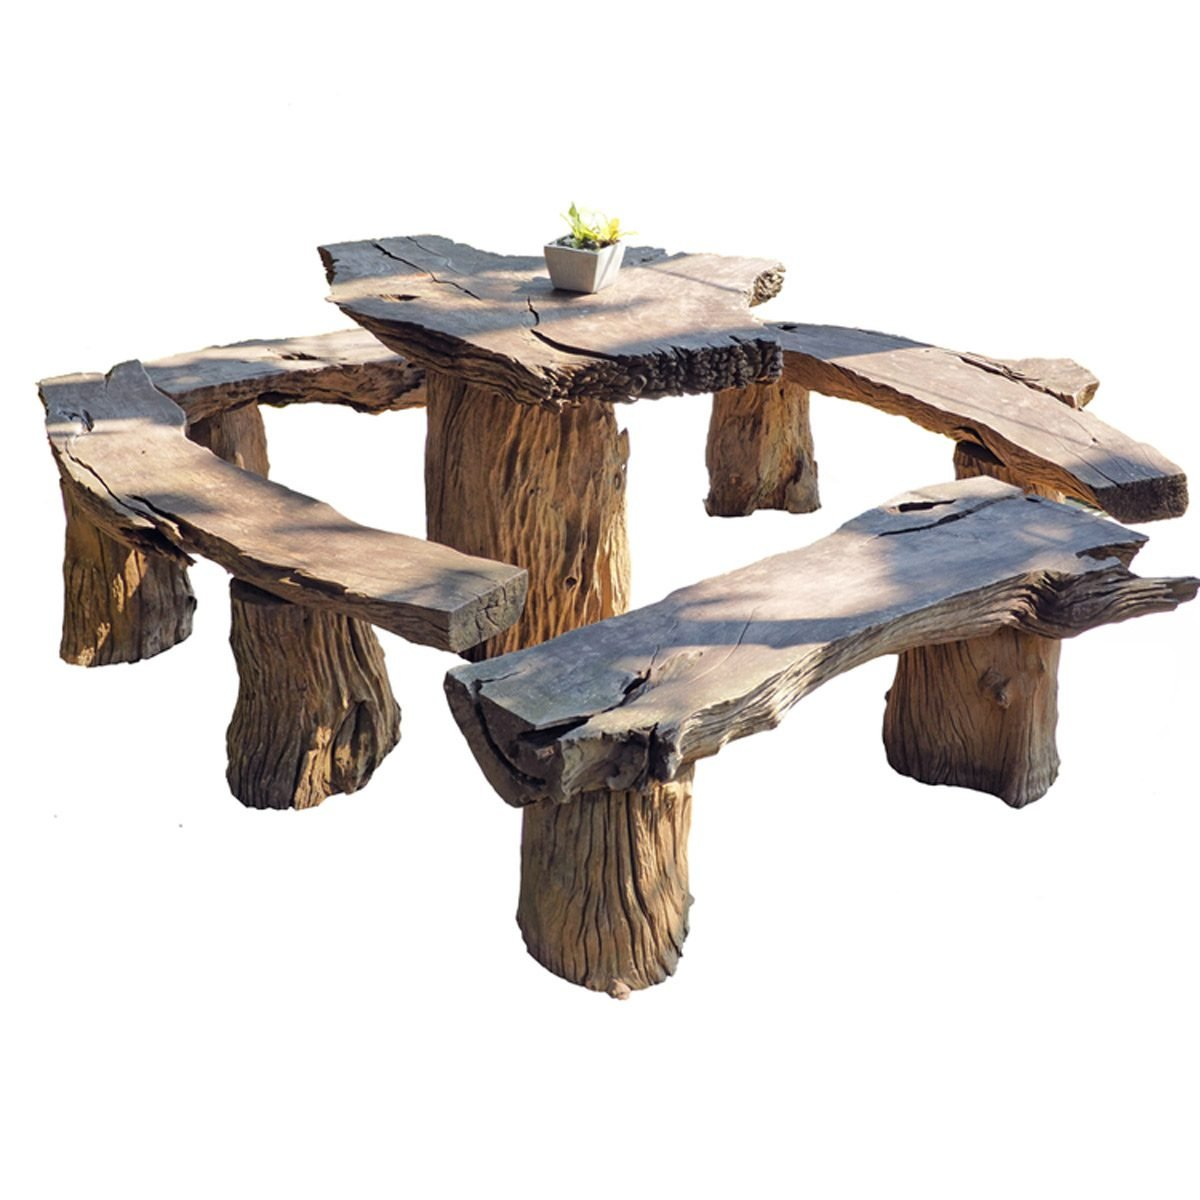 40 Outdoor Woodworking Projects For Beginners: 14 Picnic Tables You Have To See To Believe!